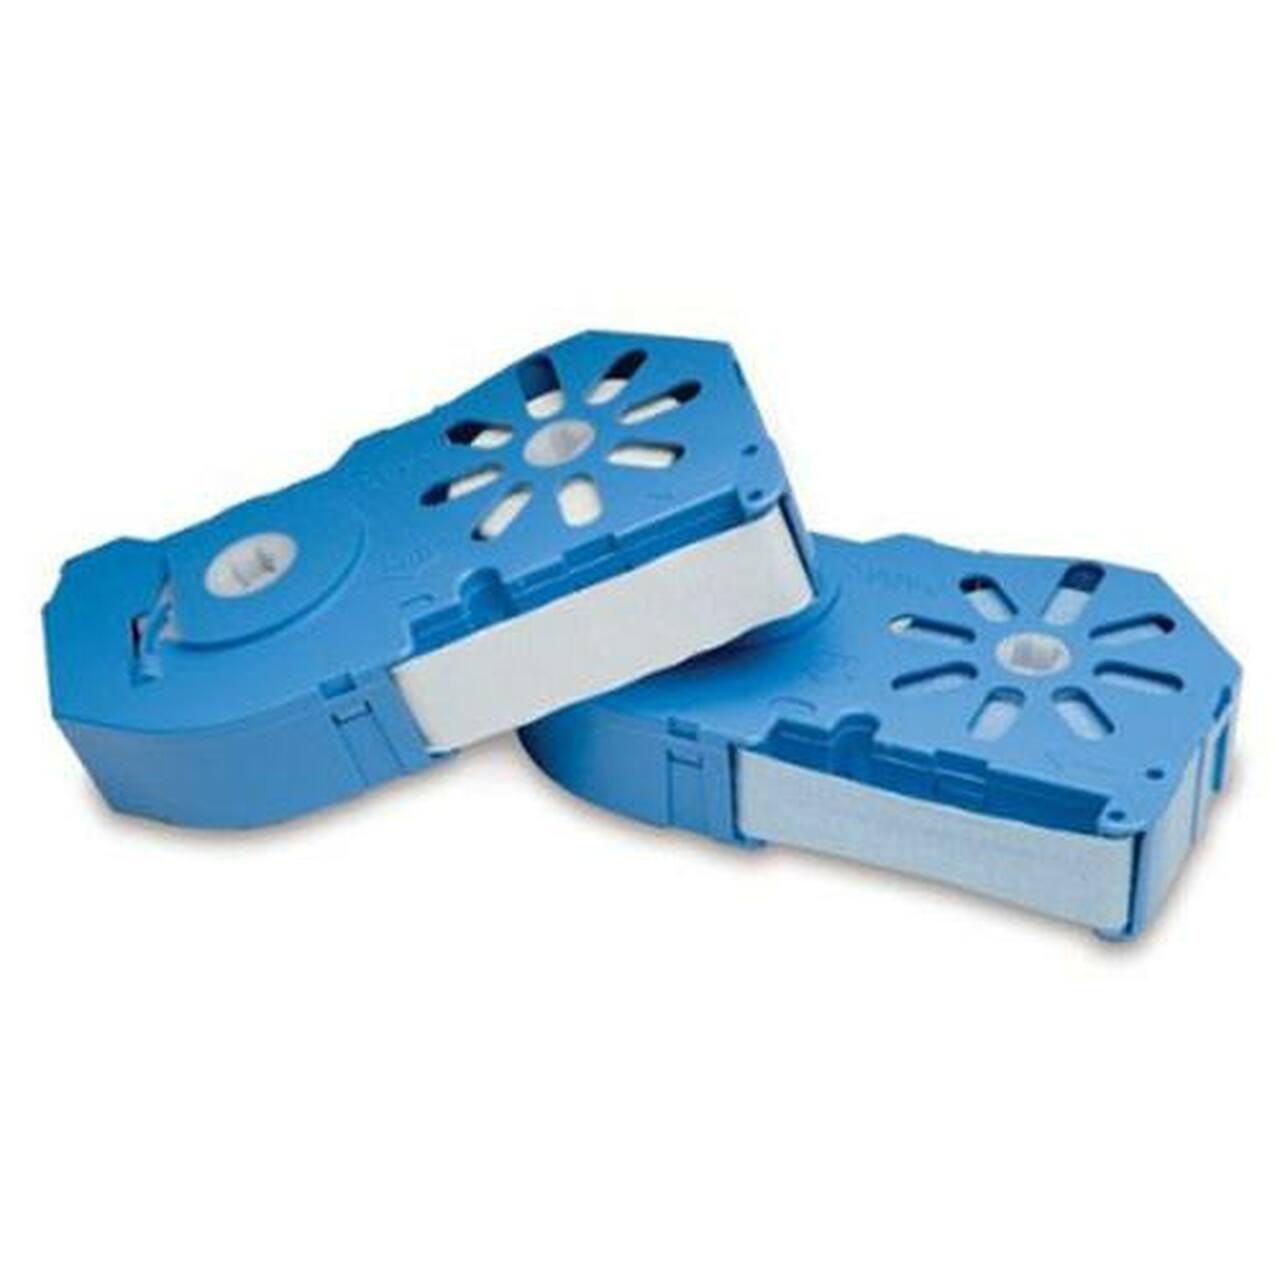 Cletop Blue S Type Tape Replacement - 8500-10-0021MZ